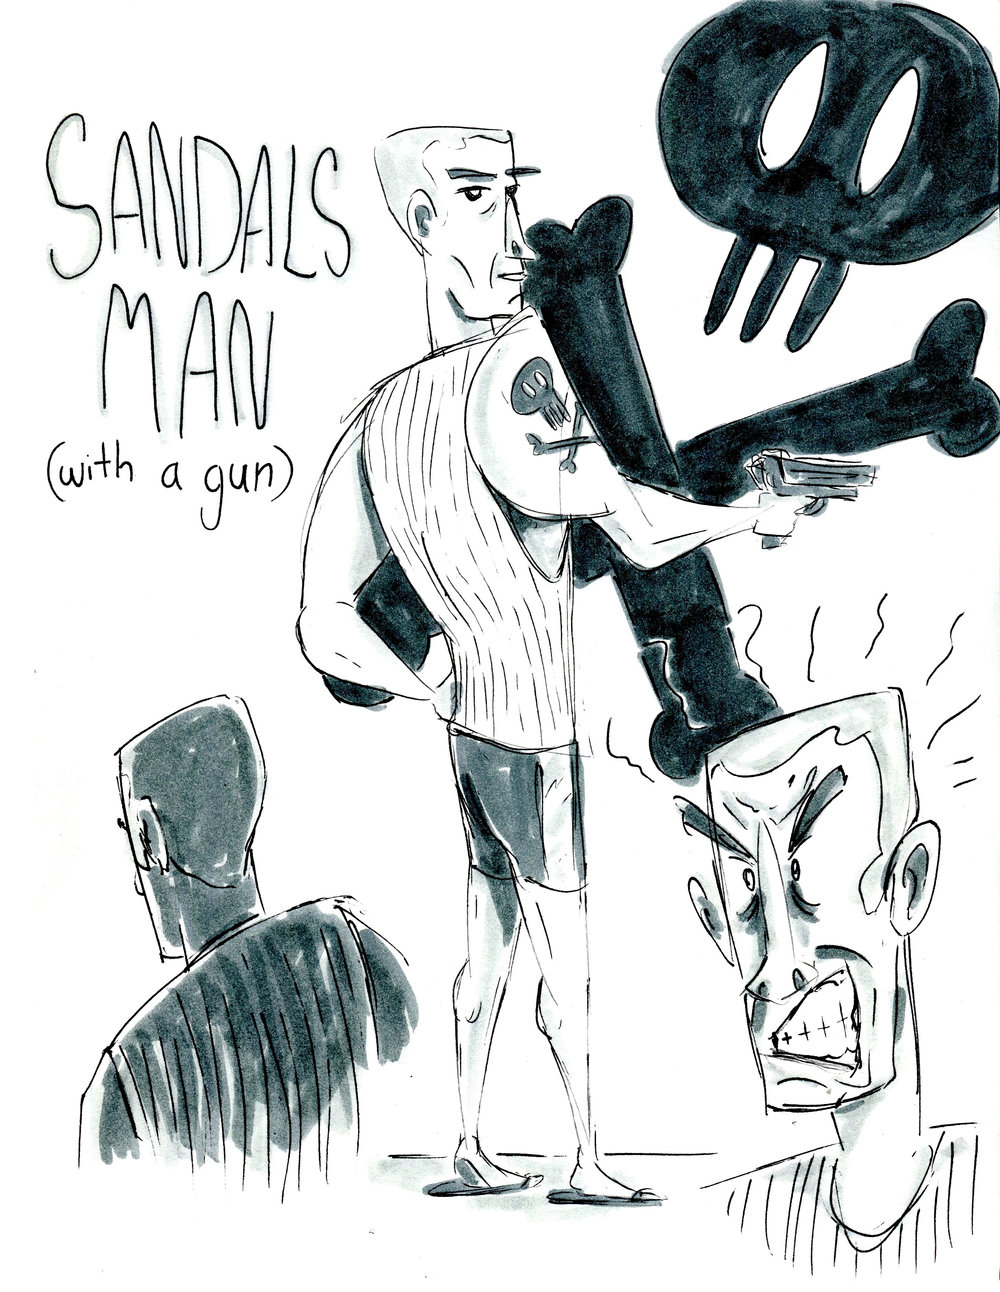 sandals man with a gun.jpg